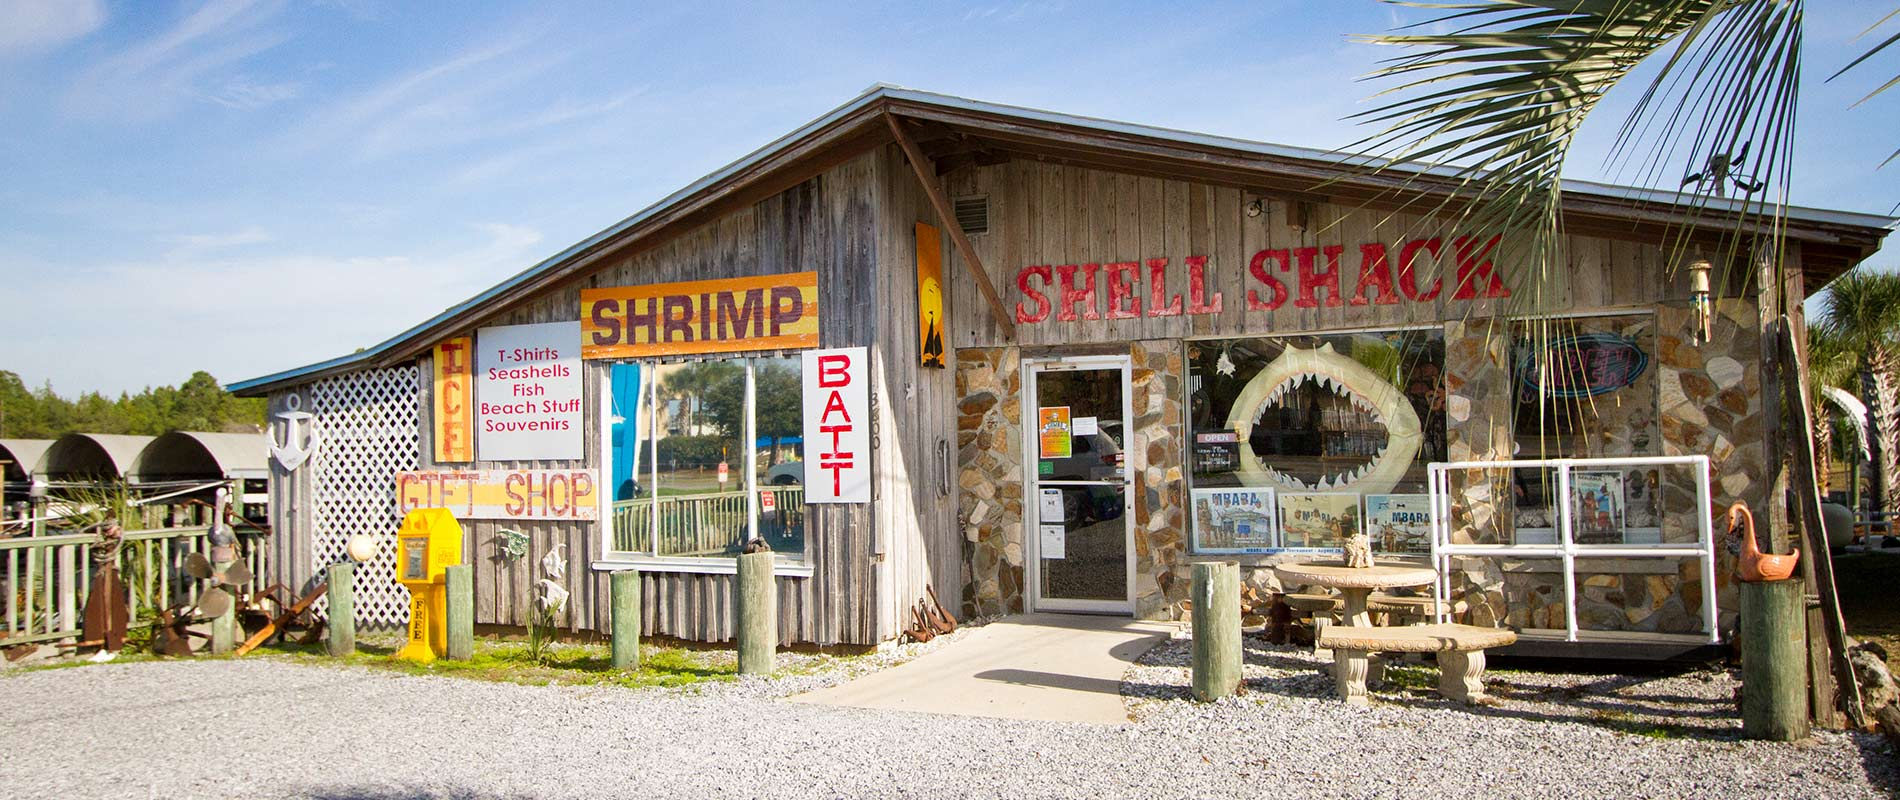 shell shack shop exterior located in mexico beach florida